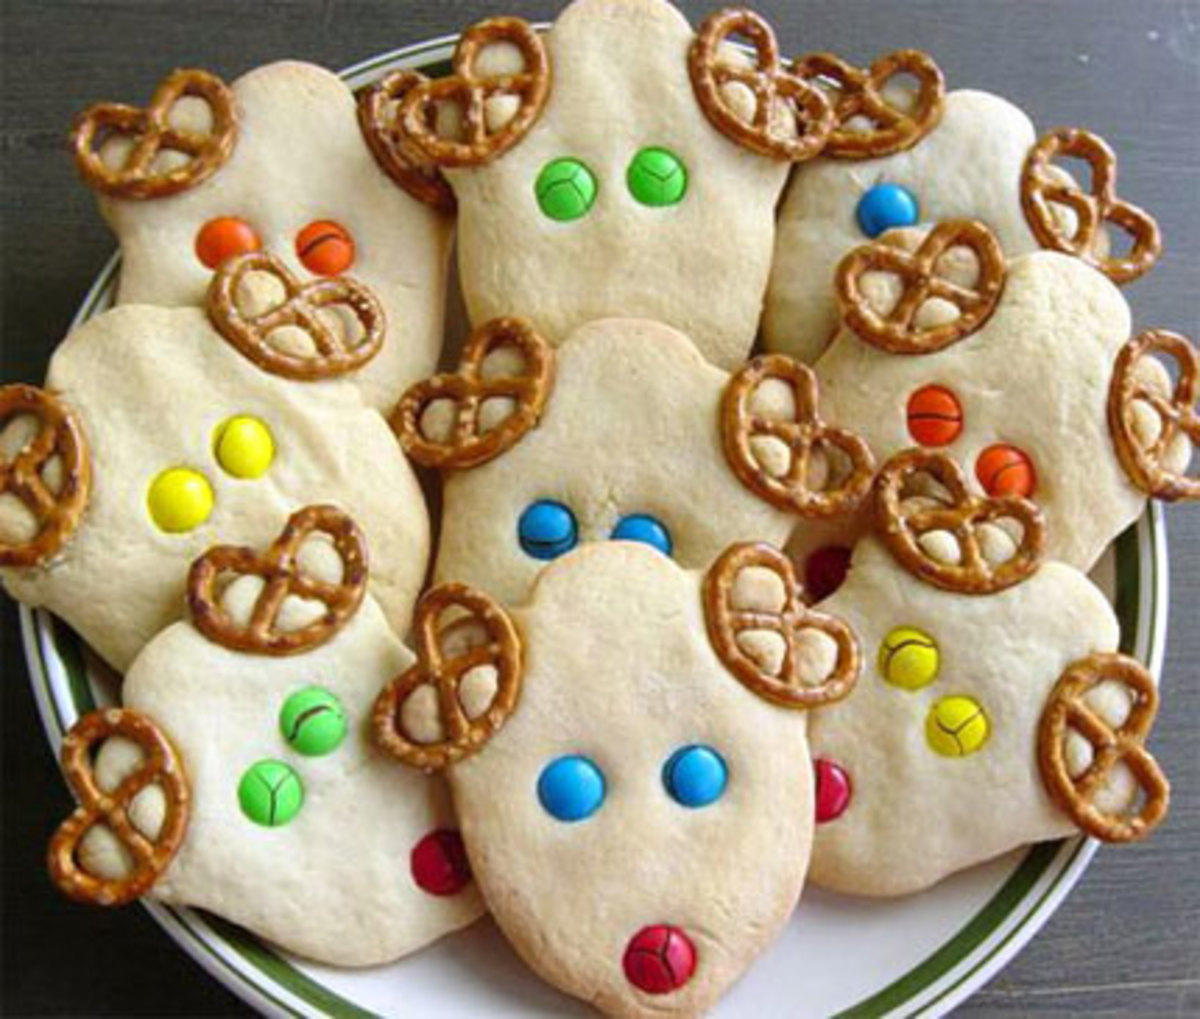 Reindeer Christmas Cookies (Photo: Lushlee.com)